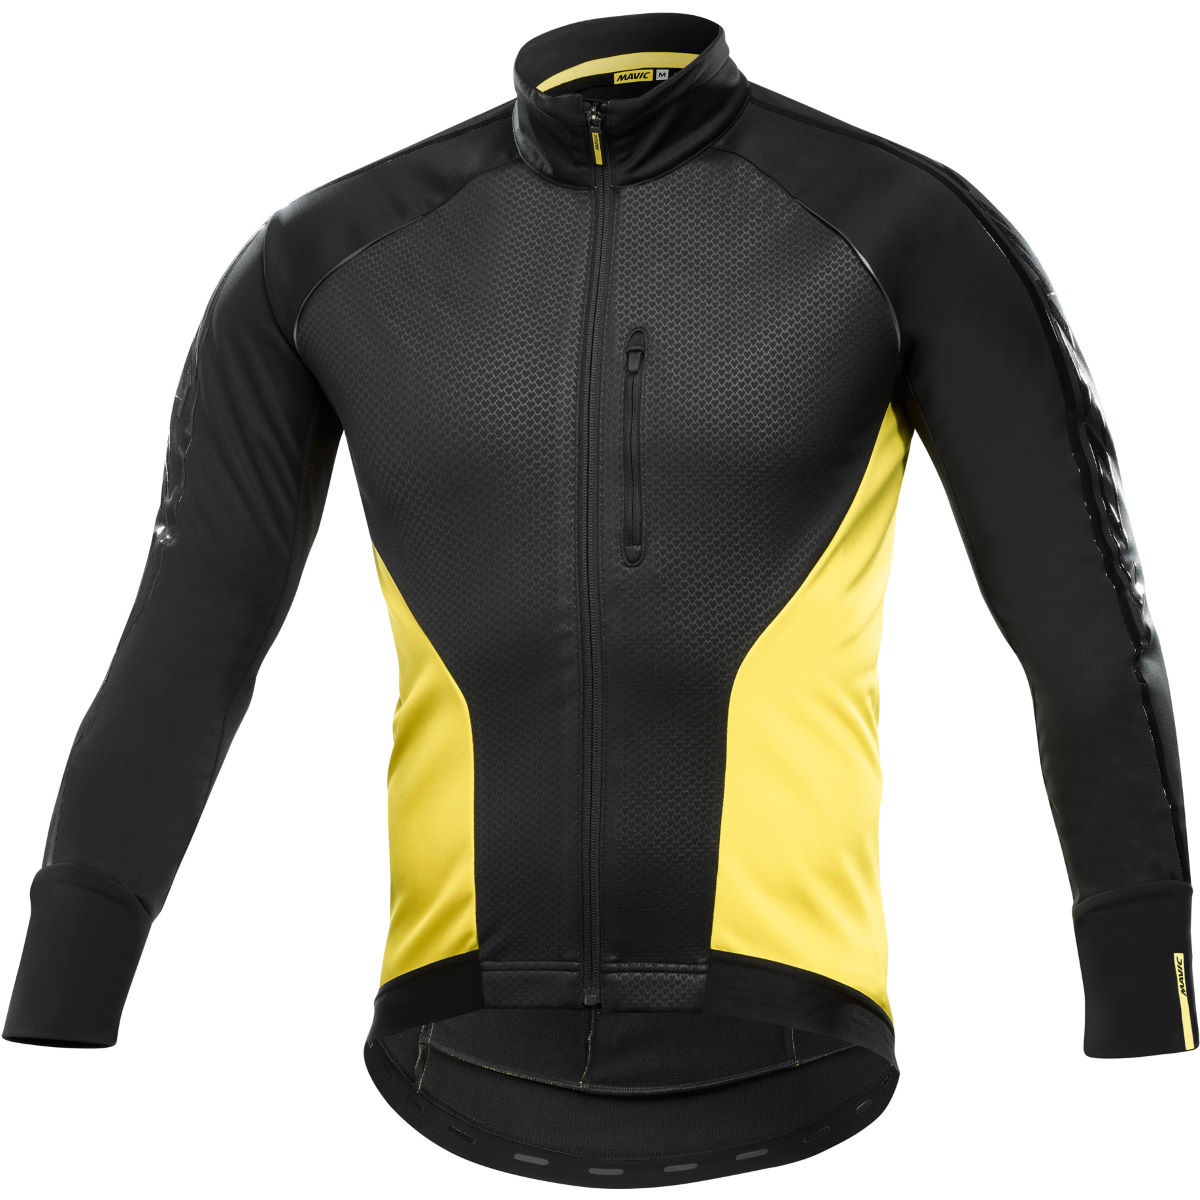 Veste Mavic Cosmic Elite Thermo - S Black/Yellow Mavic Vestes